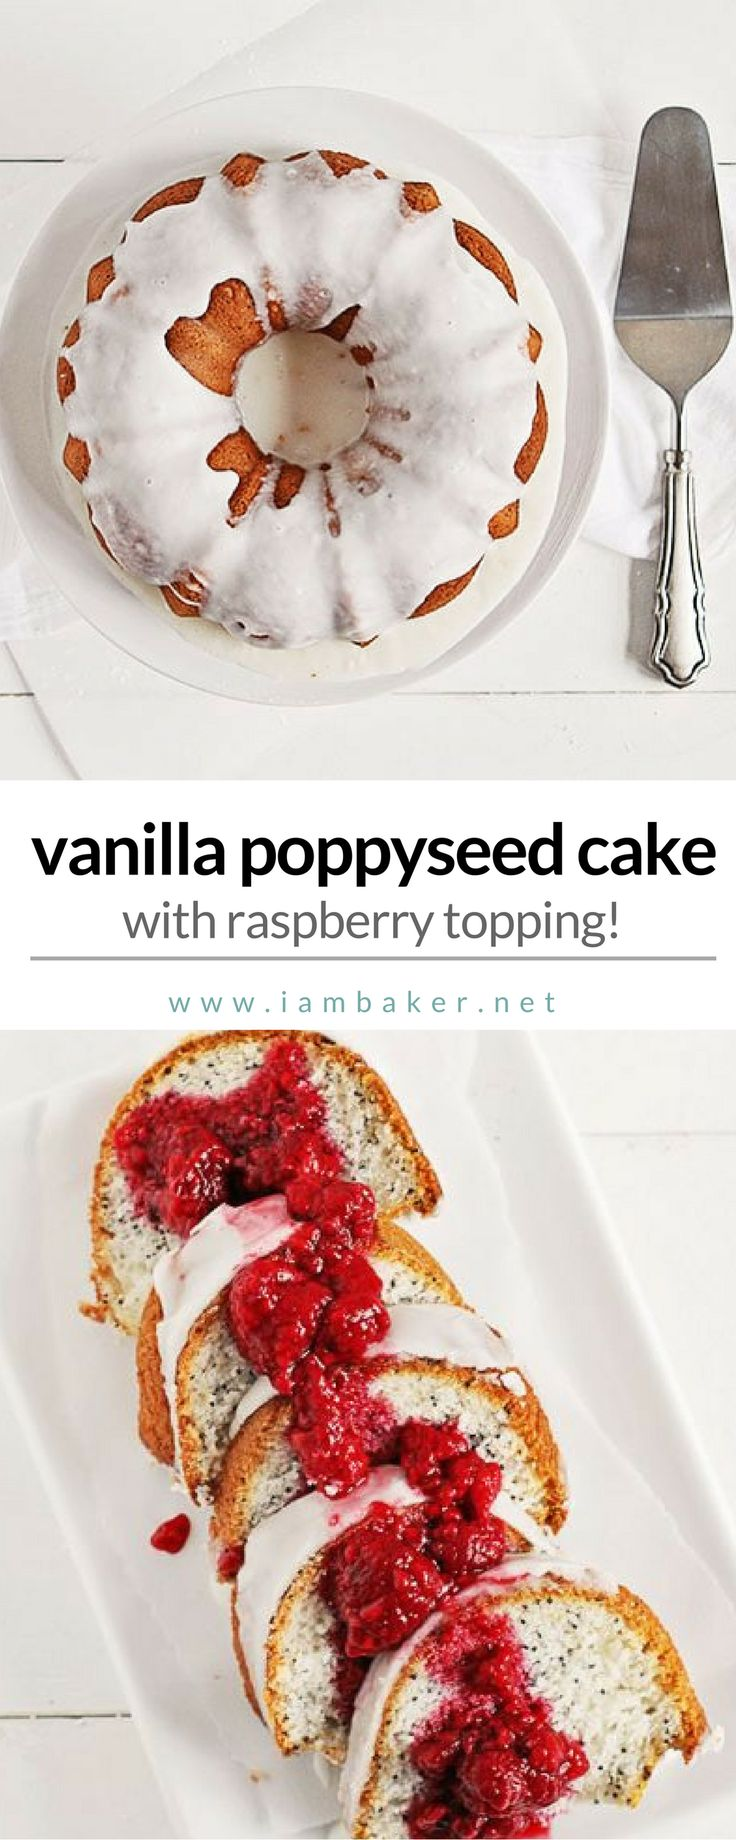 Easy dessert recipes or easy cake recipes? You'll gonna love this vanilla poppyseed cake with raspberry topping! It's a homemade bundt cake - a light and fragrant vanilla cake peppered with black poppy seeds and covered in the sweetest glaze. Add to your best Thanksgiving dessert recipes! For more delicious dessert recipes to make, check us out at #iambaker. #cakes #desserts